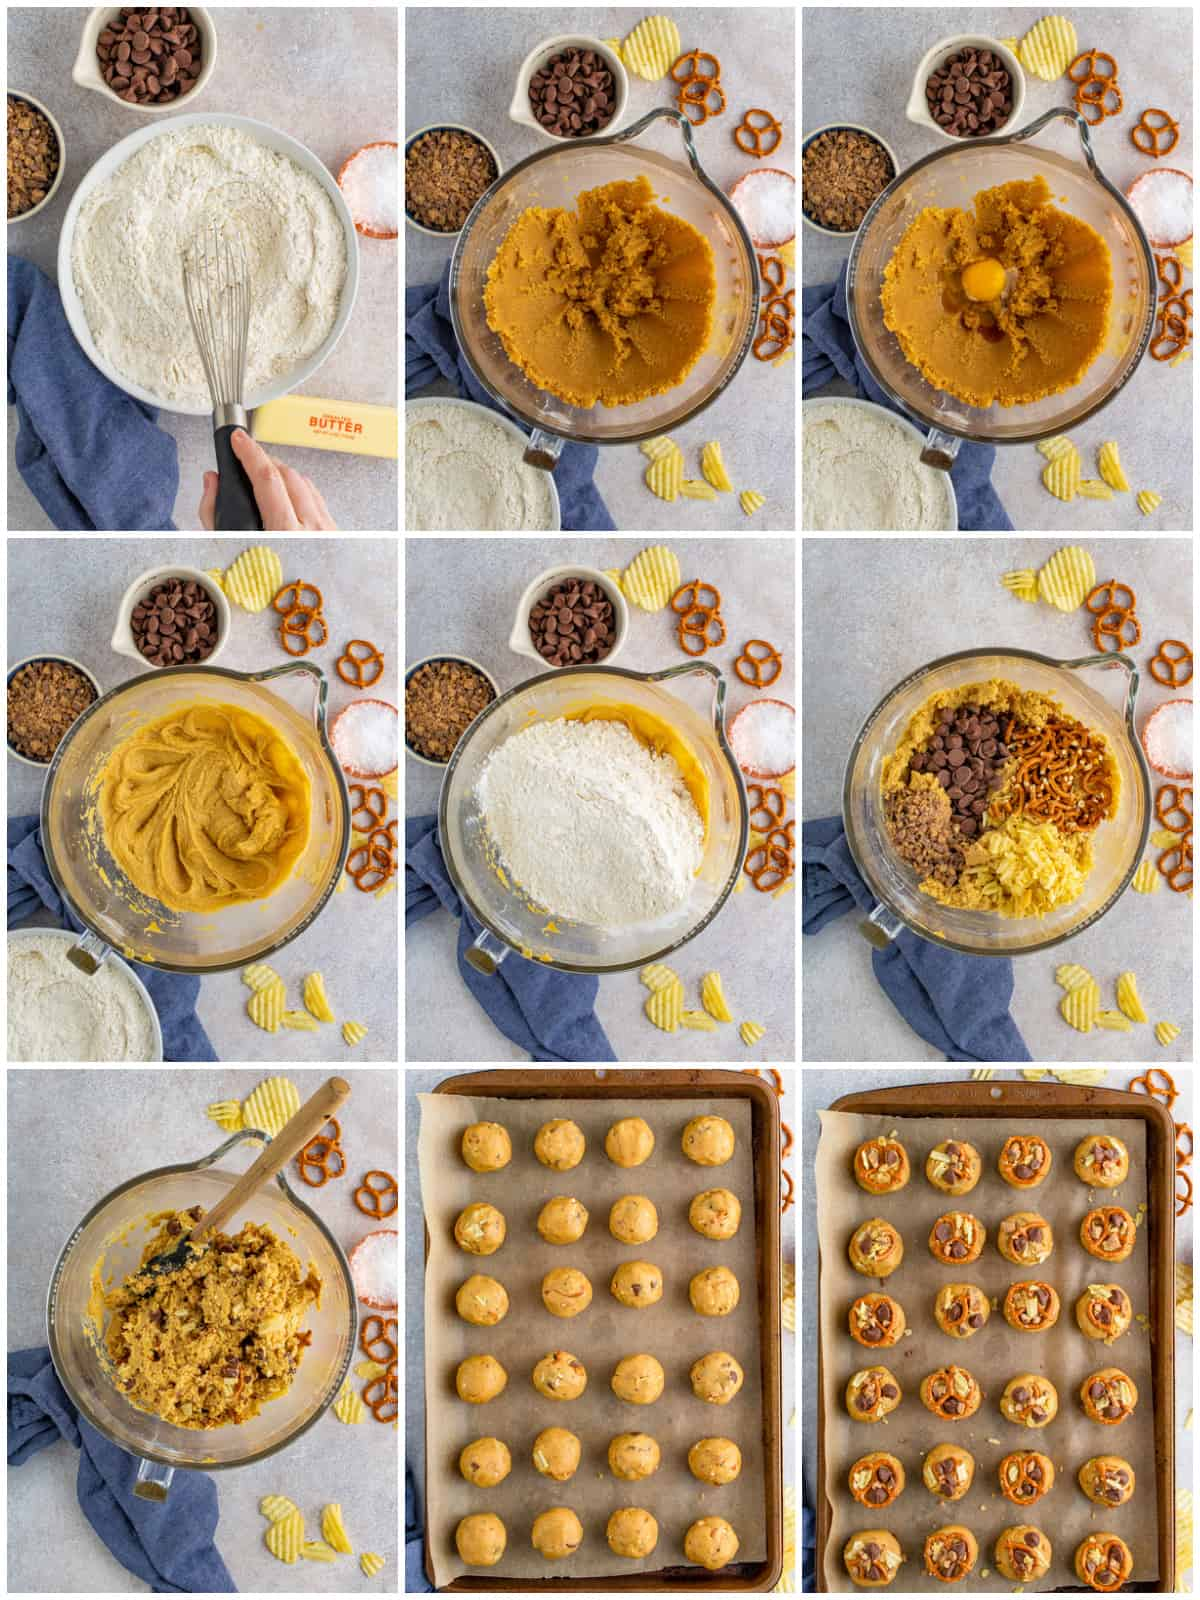 Step by step photos on how to make Kitchen Sink Cookies